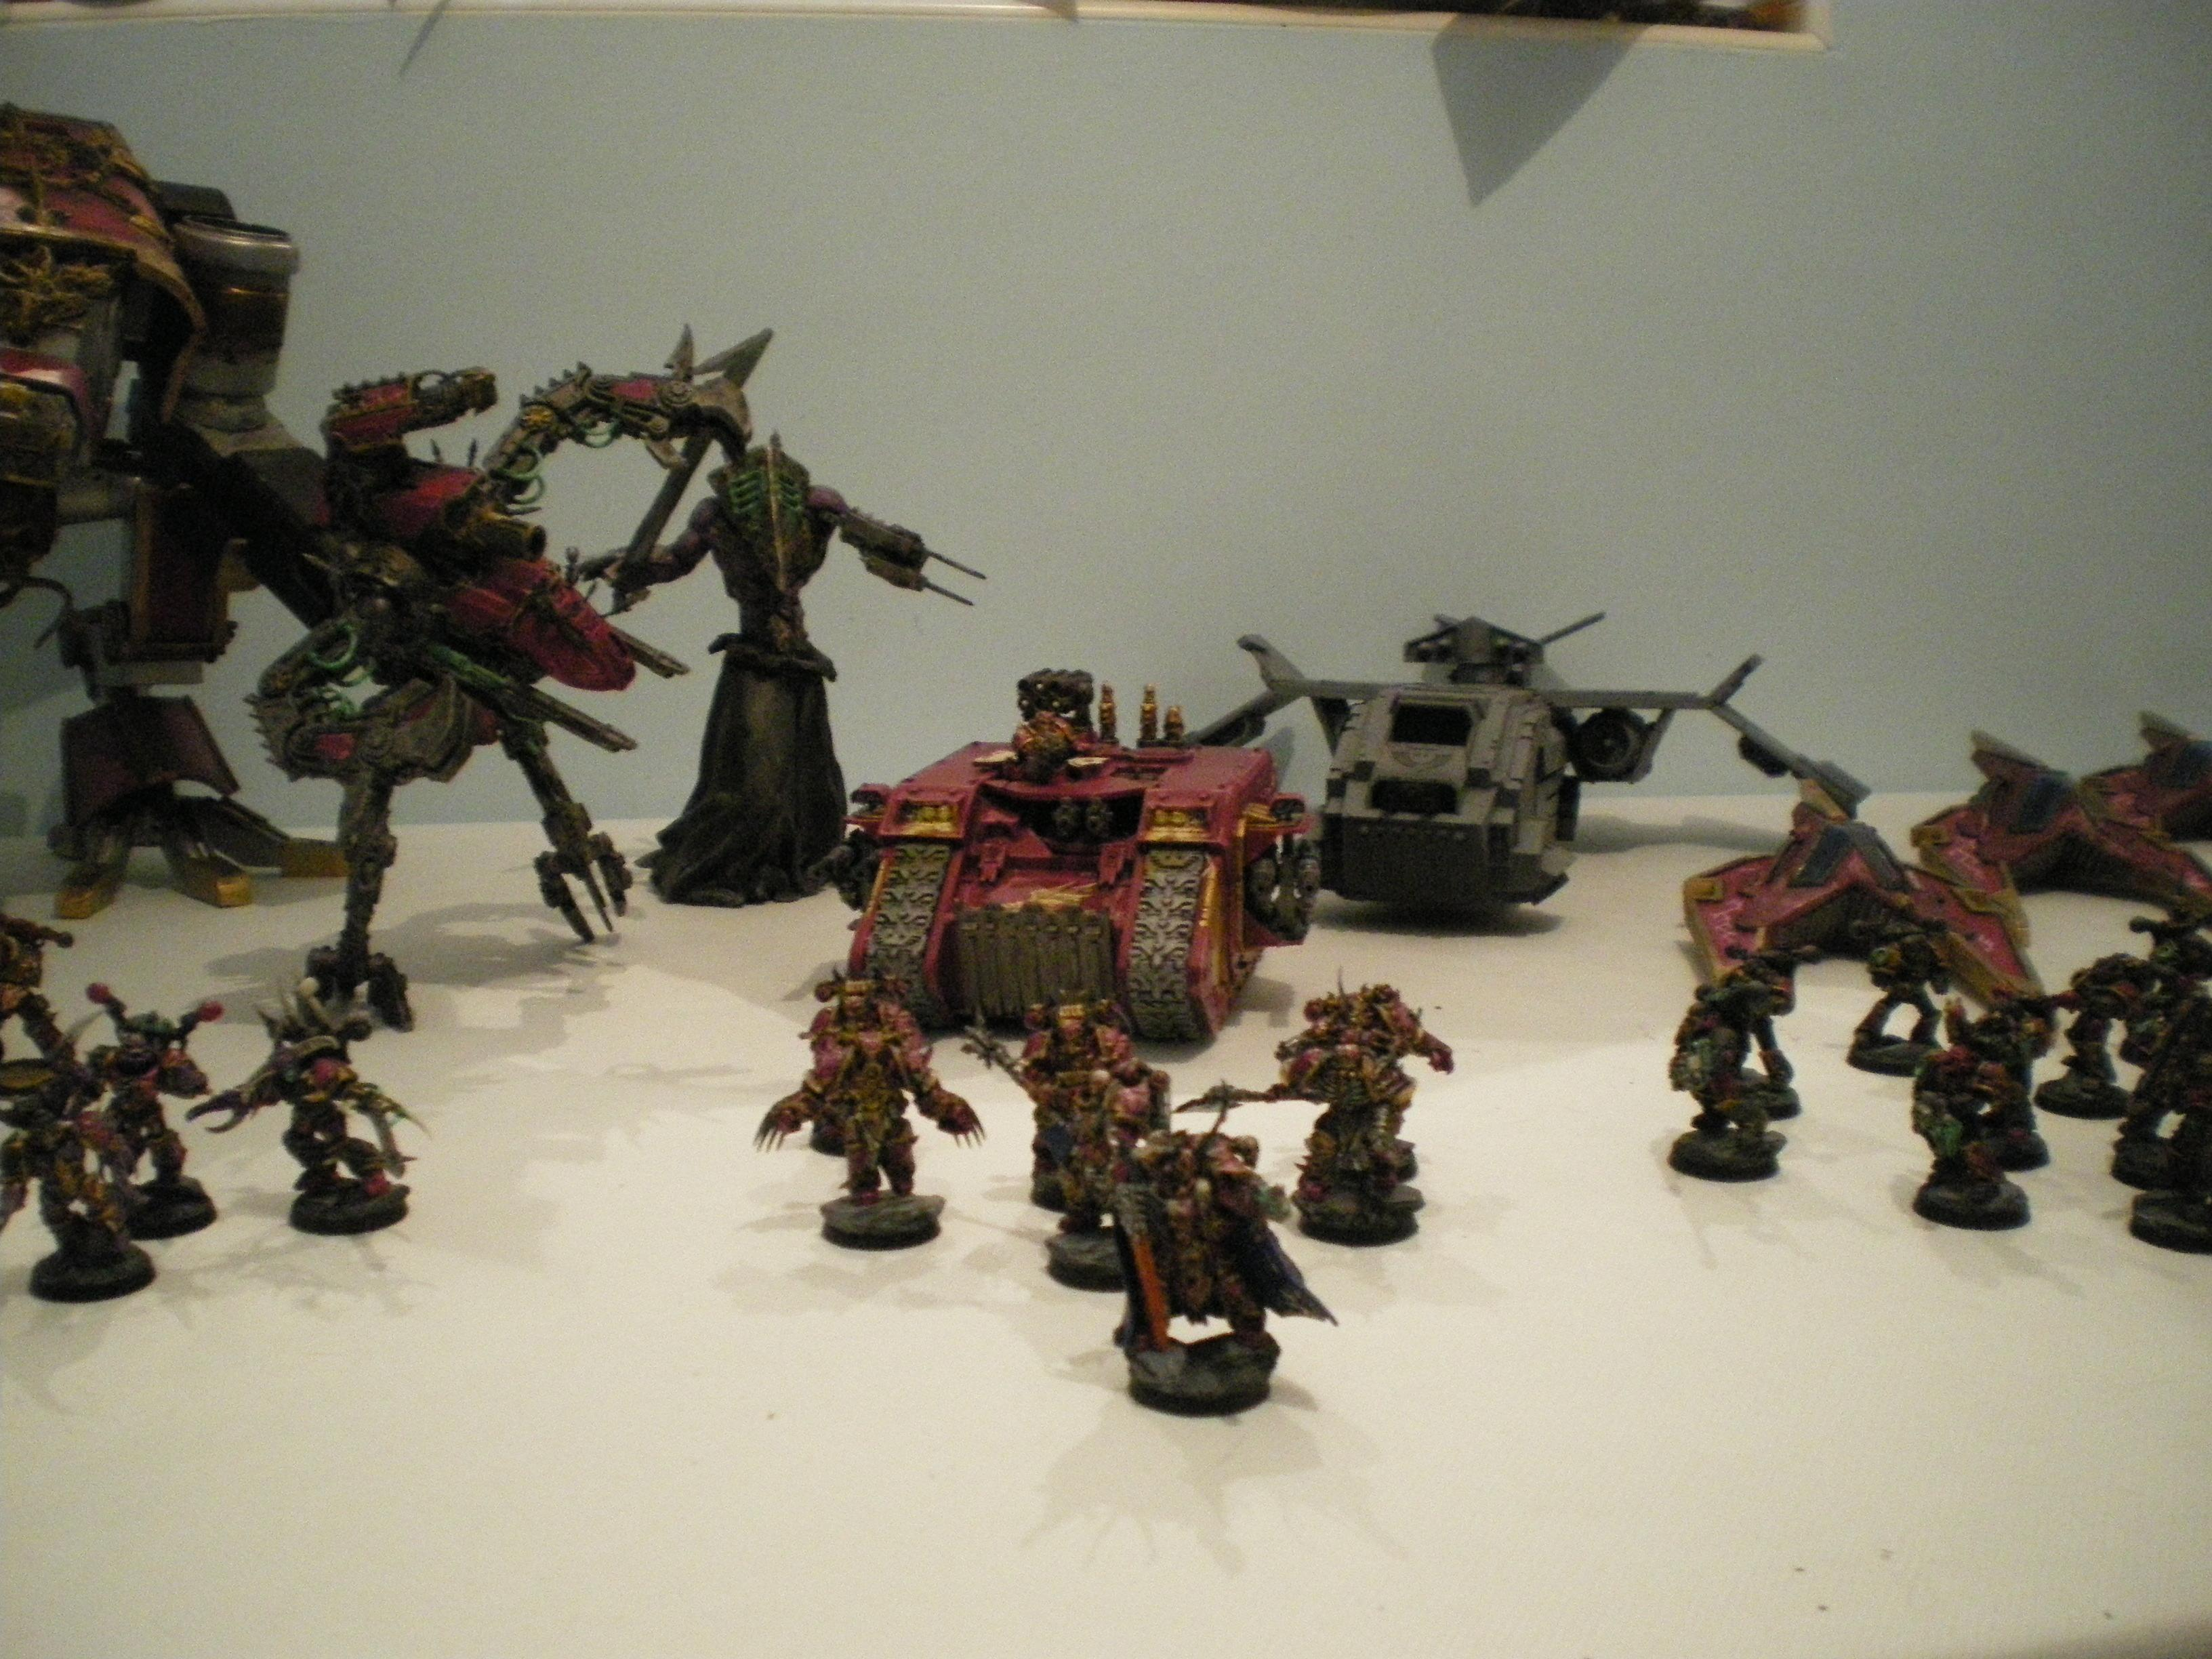 Army, Chaos, Chaos Space Marines, Emperor's Children, Land Raider